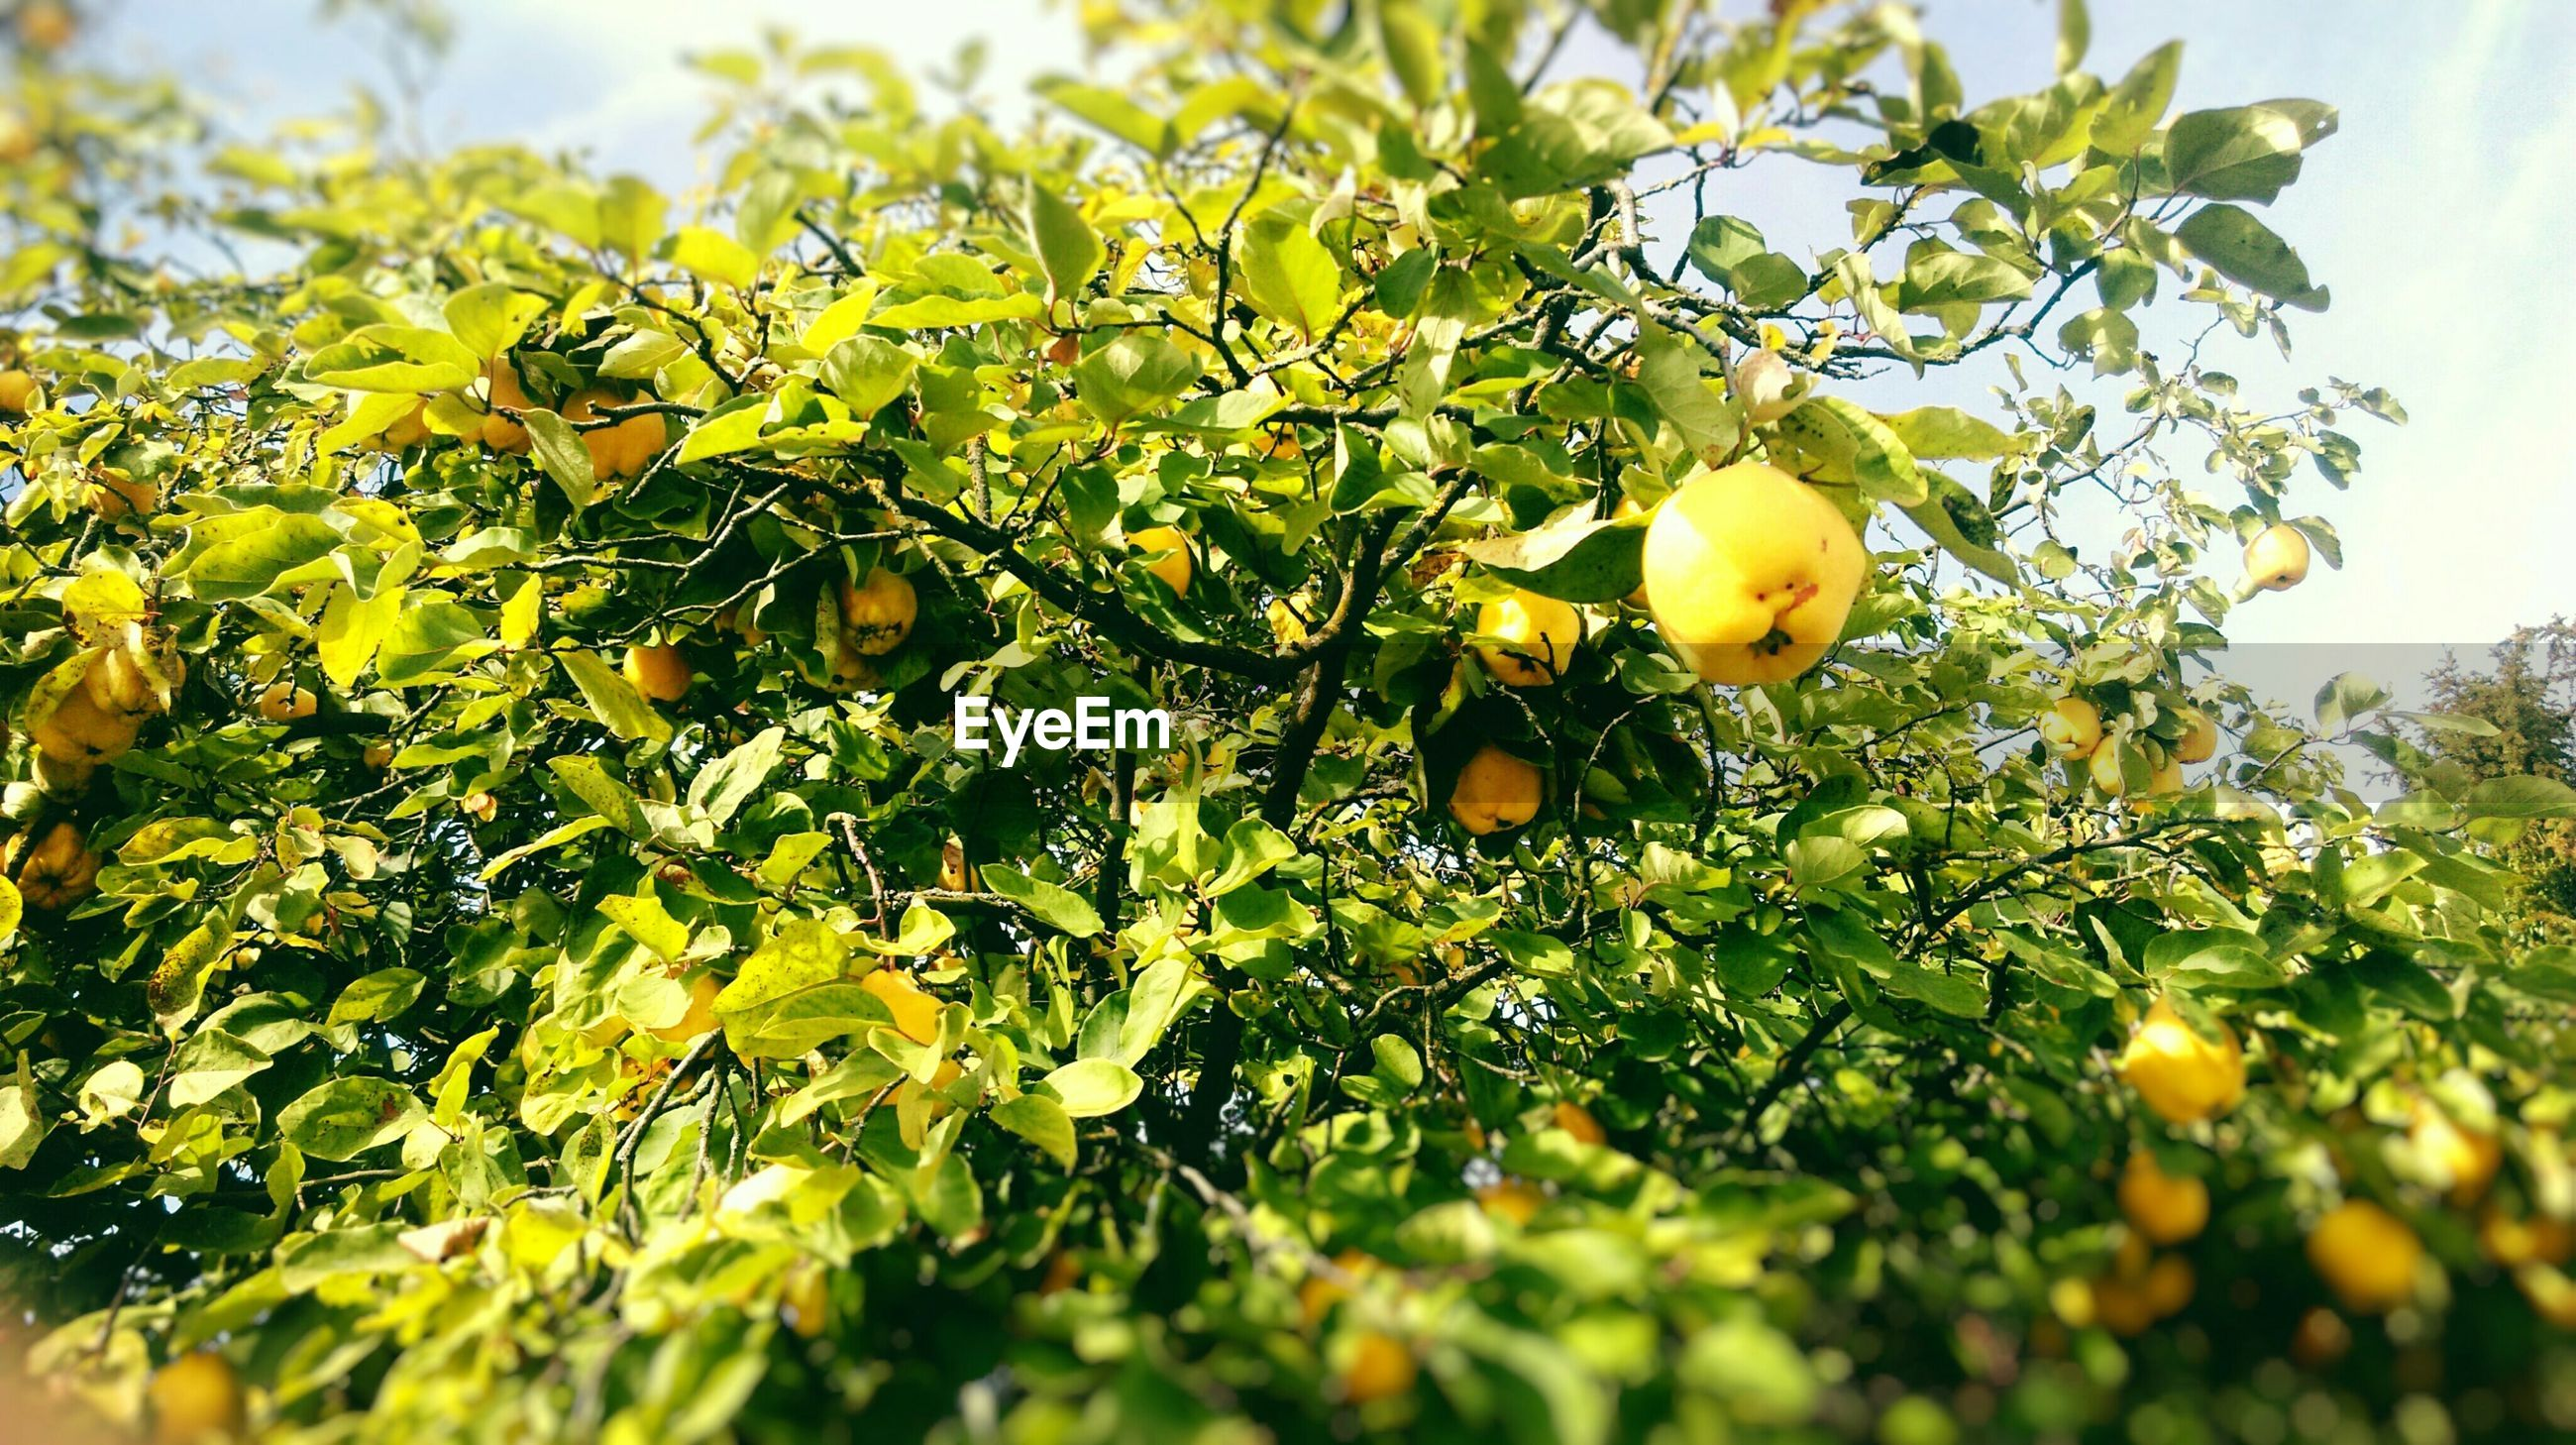 food and drink, fruit, food, tree, healthy eating, growth, freshness, green color, branch, leaf, agriculture, ripe, nature, close-up, grape, yellow, vineyard, growing, day, low angle view